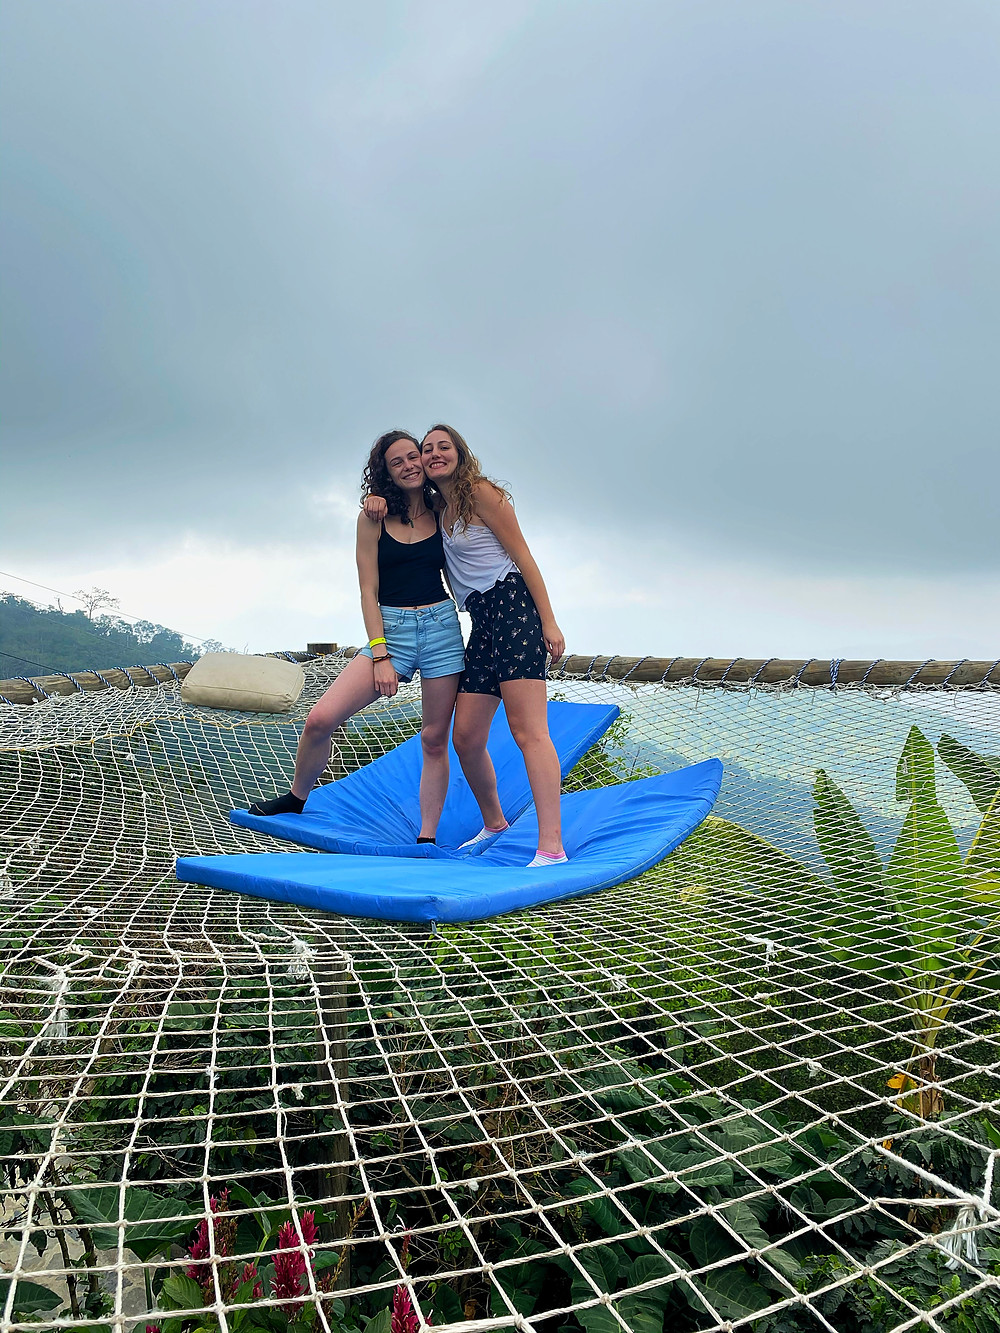 Two girls on adventure travel hammock over edge of mountain in Colombia